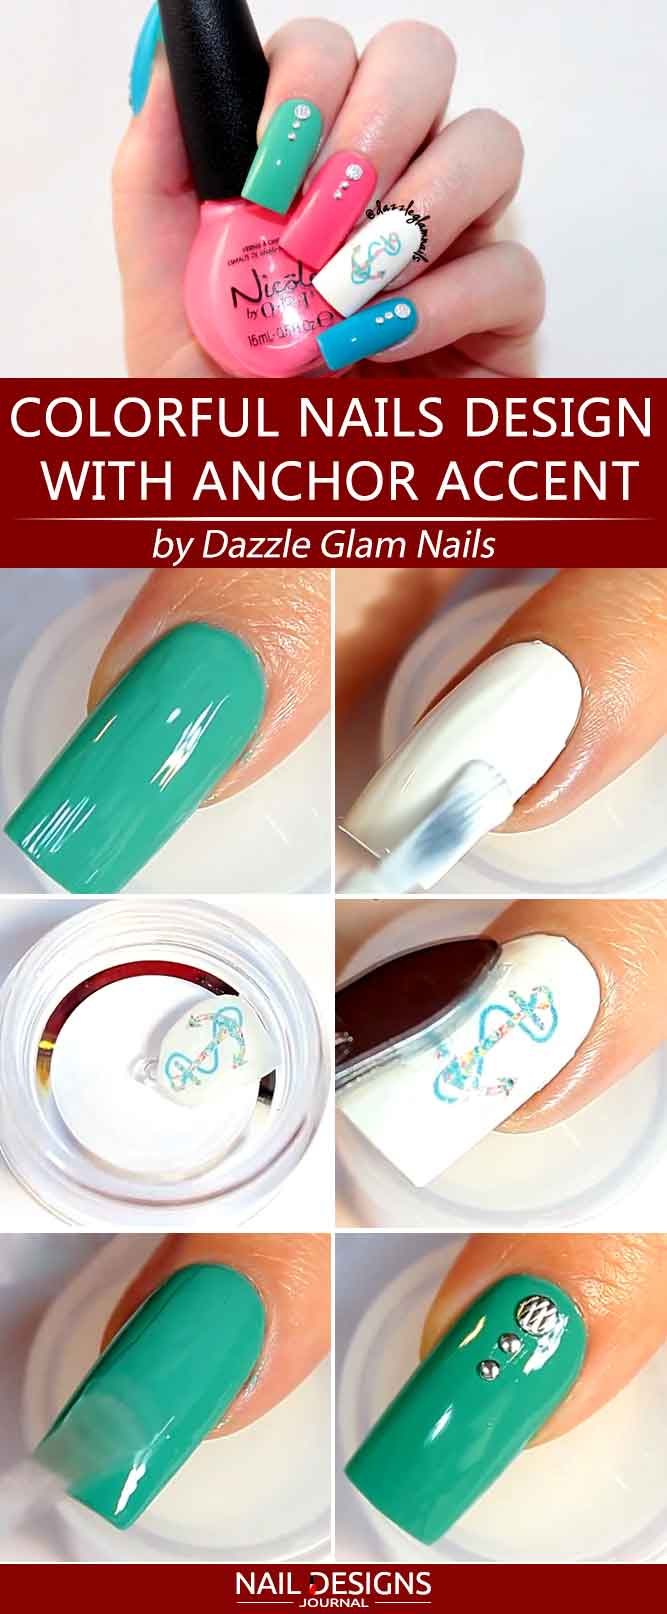 Colorful Nails Tutorial With Anchor Accent #anchornails #summernails